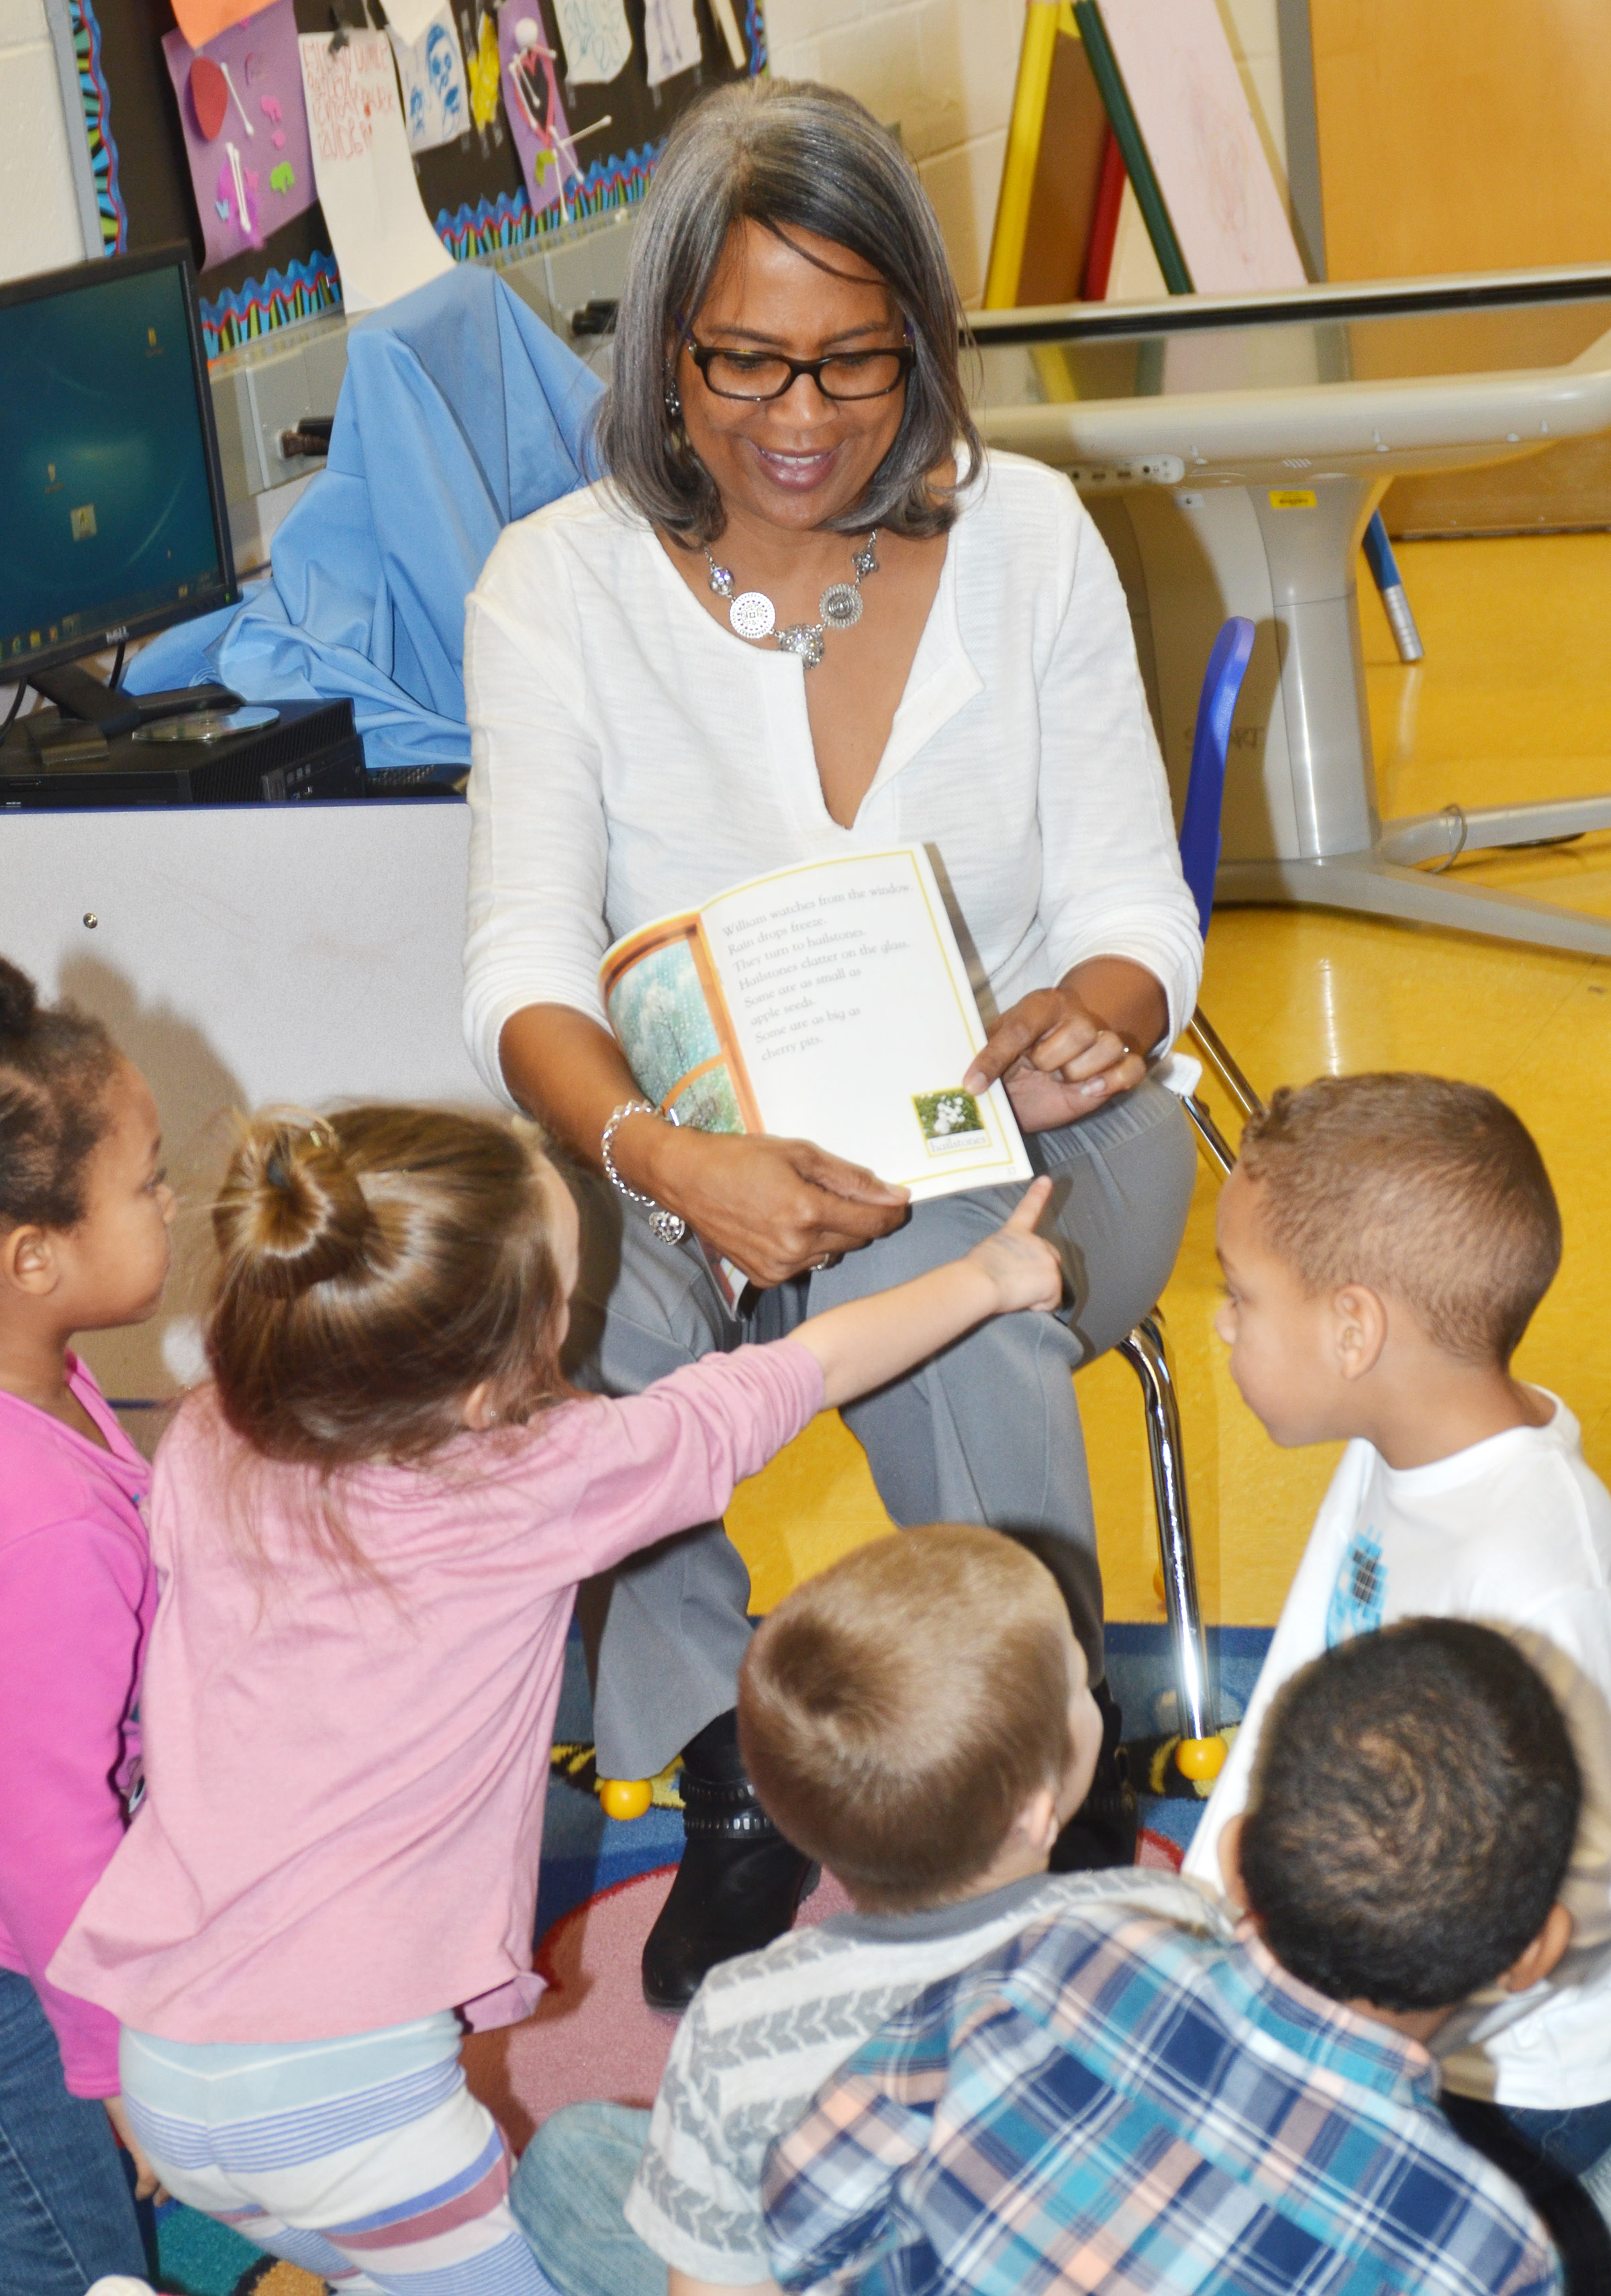 Doretha Sanders, who previously taught third-grade students at CES but is now an assistant principal, reads a book about weather to CES preschool students.